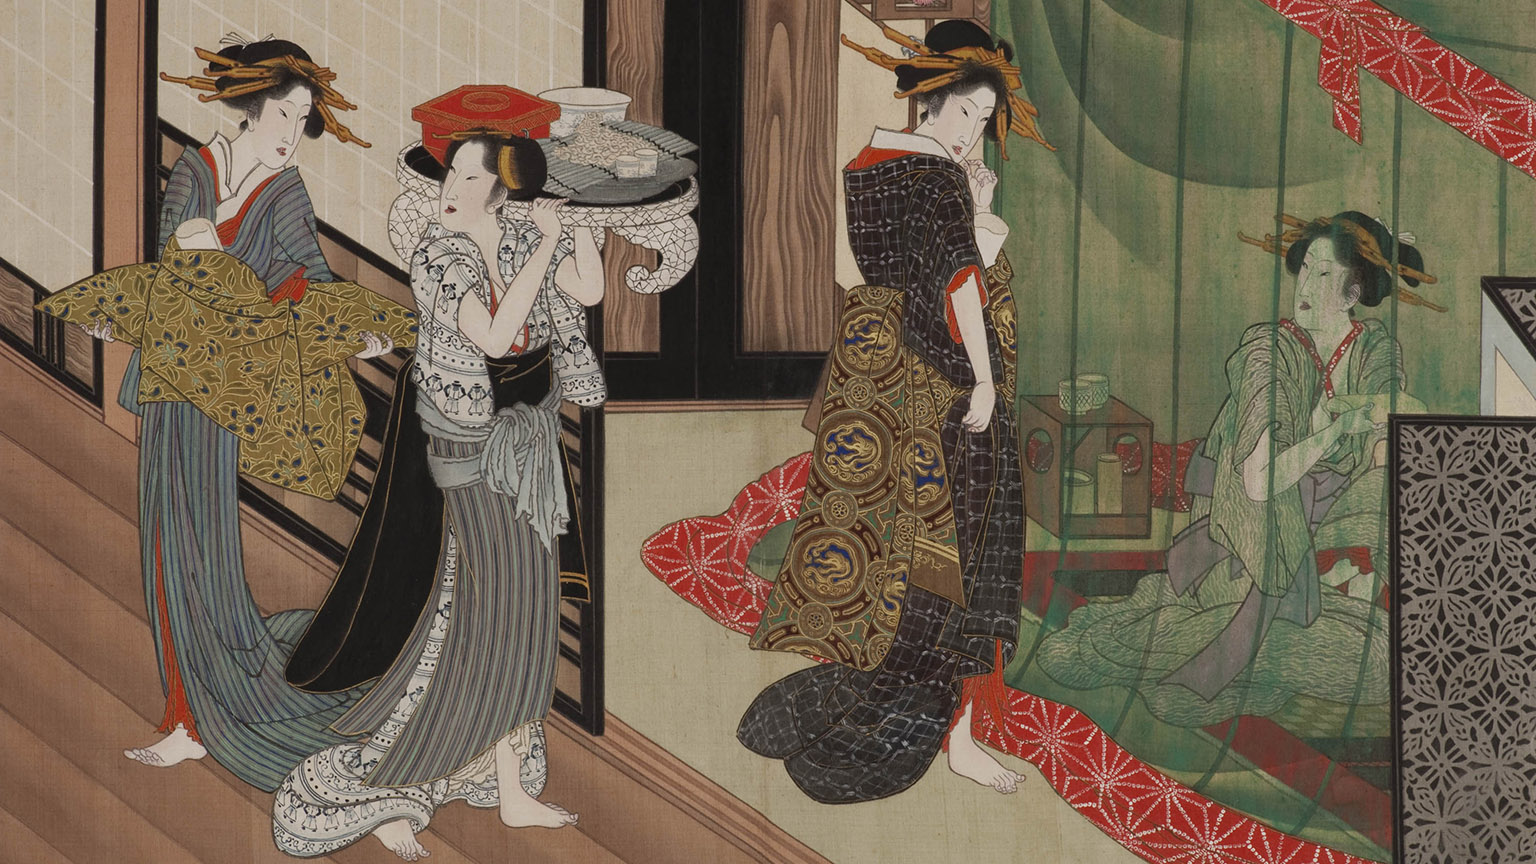 Art Institute Exhibit Brings 'Floating World' to Life